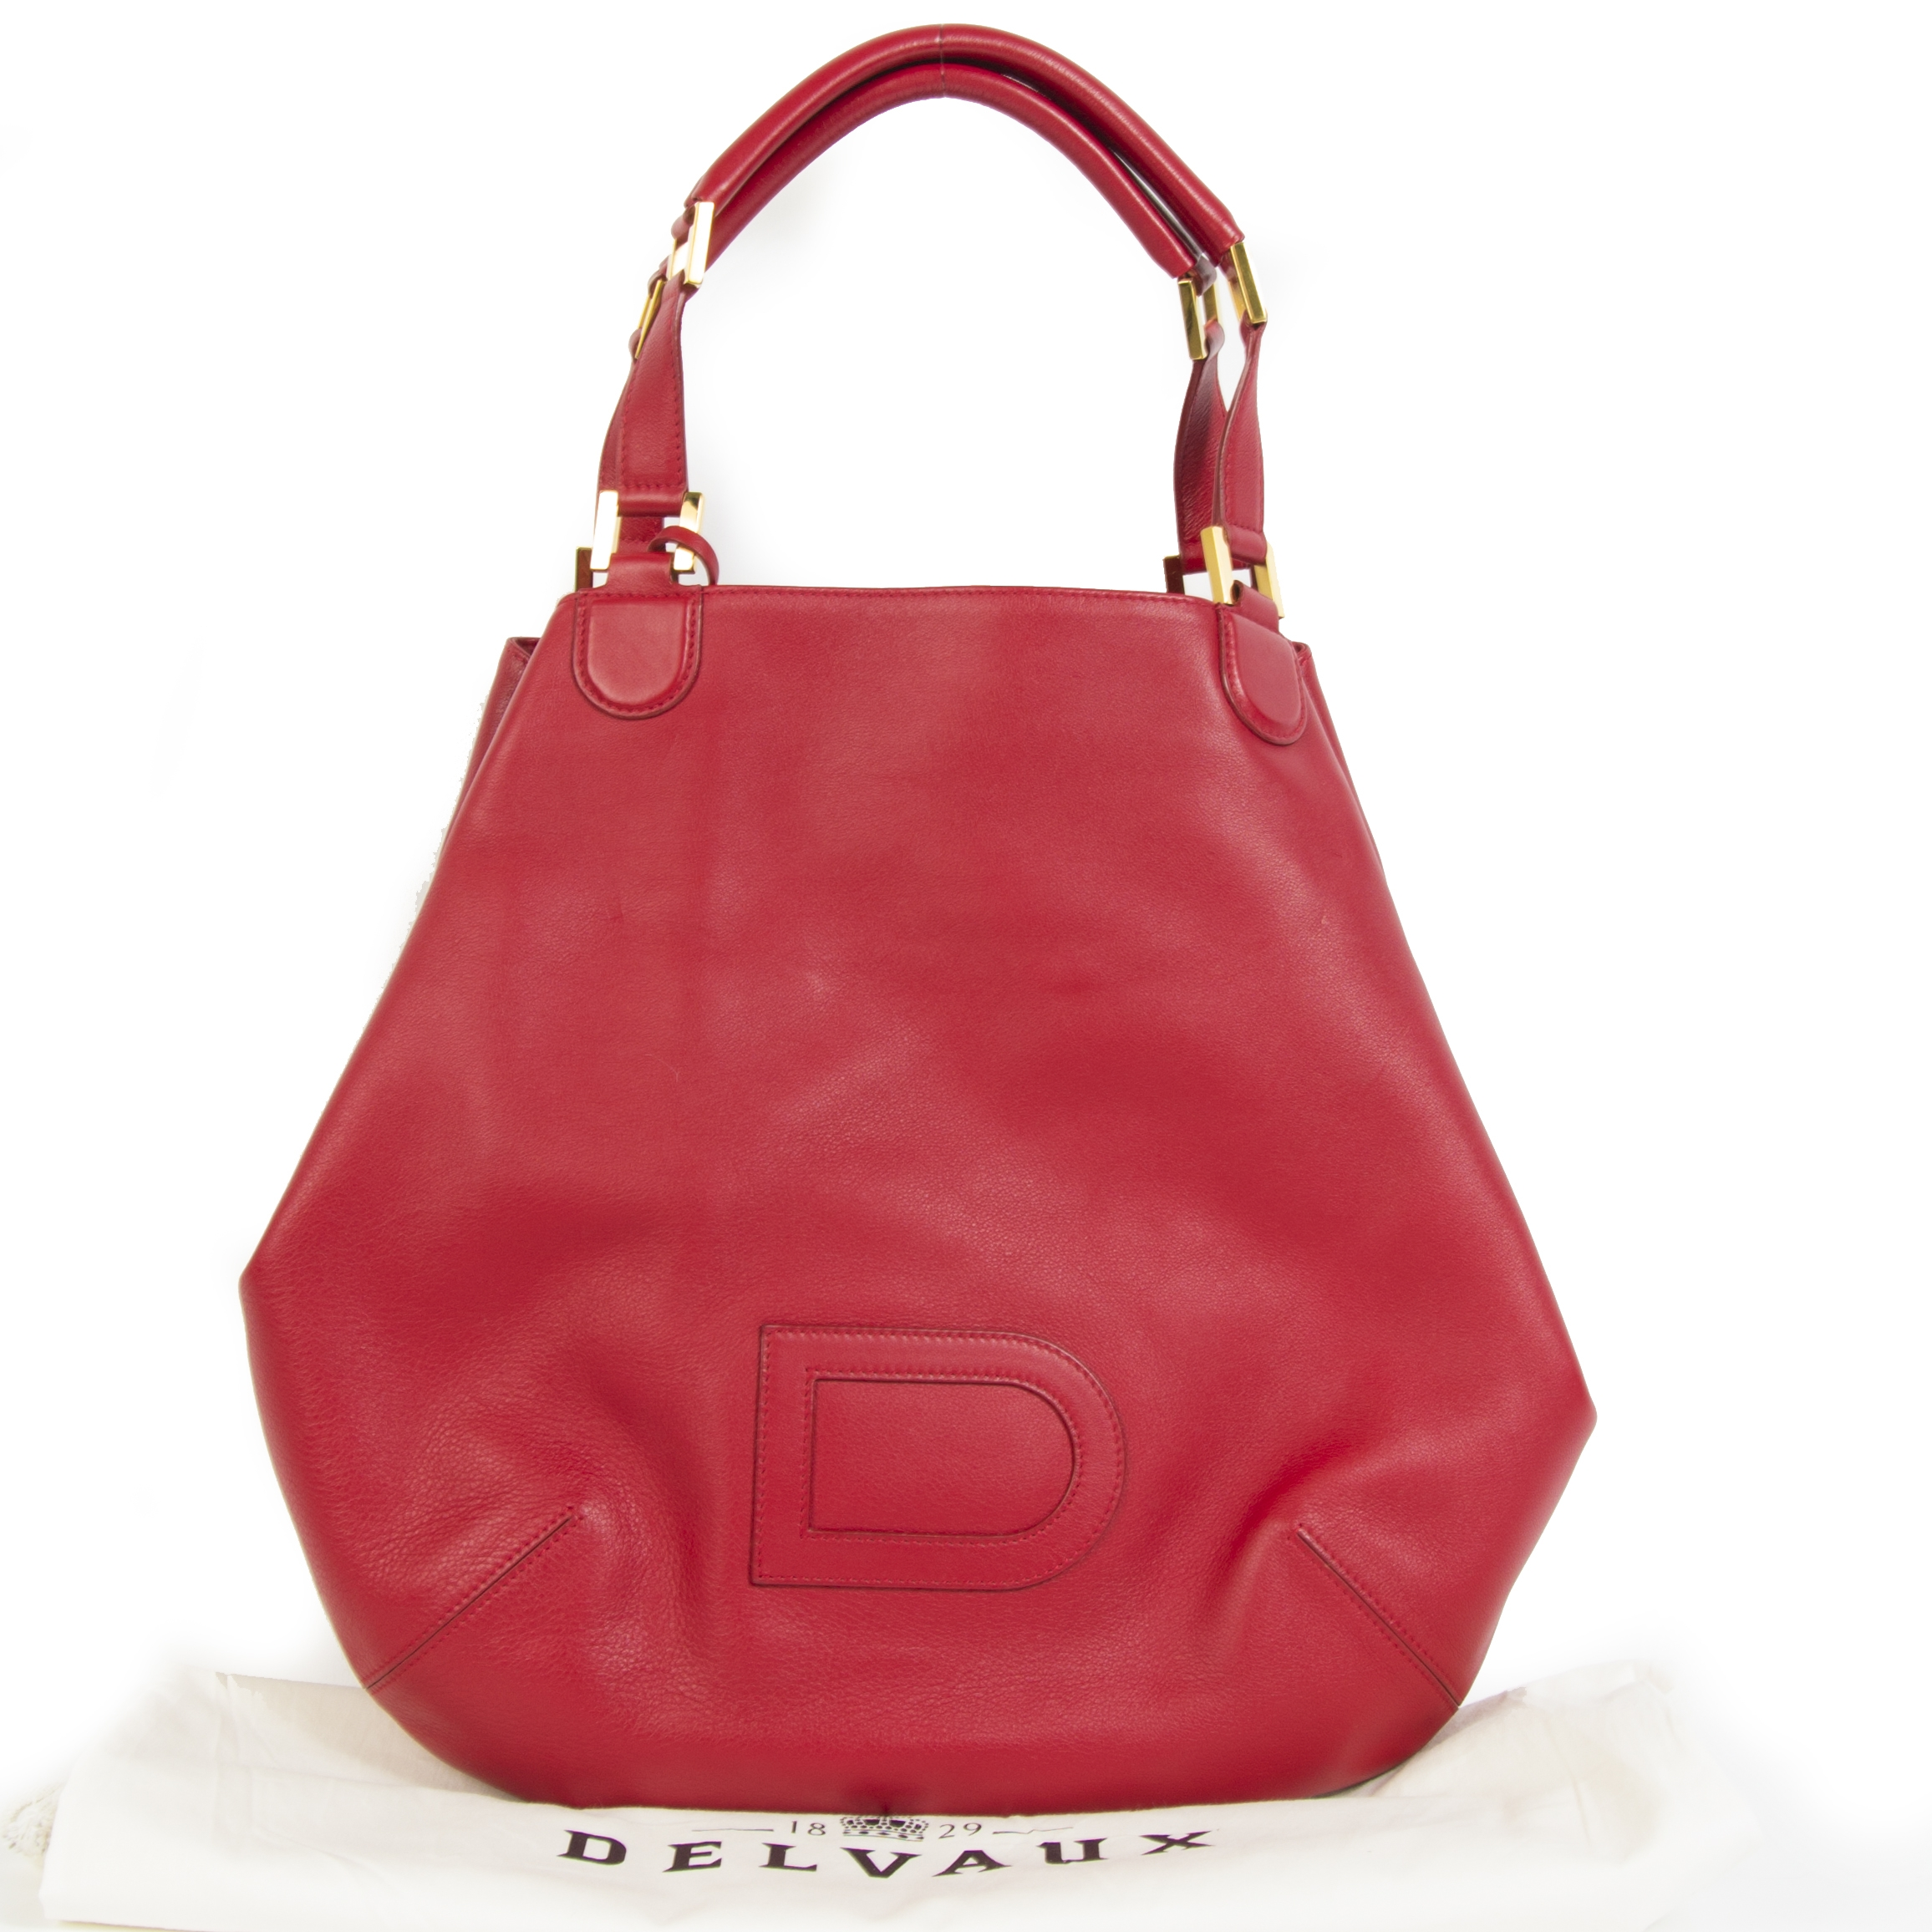 Delvaux 'Le Louise' Red Leather Shoulder Bag